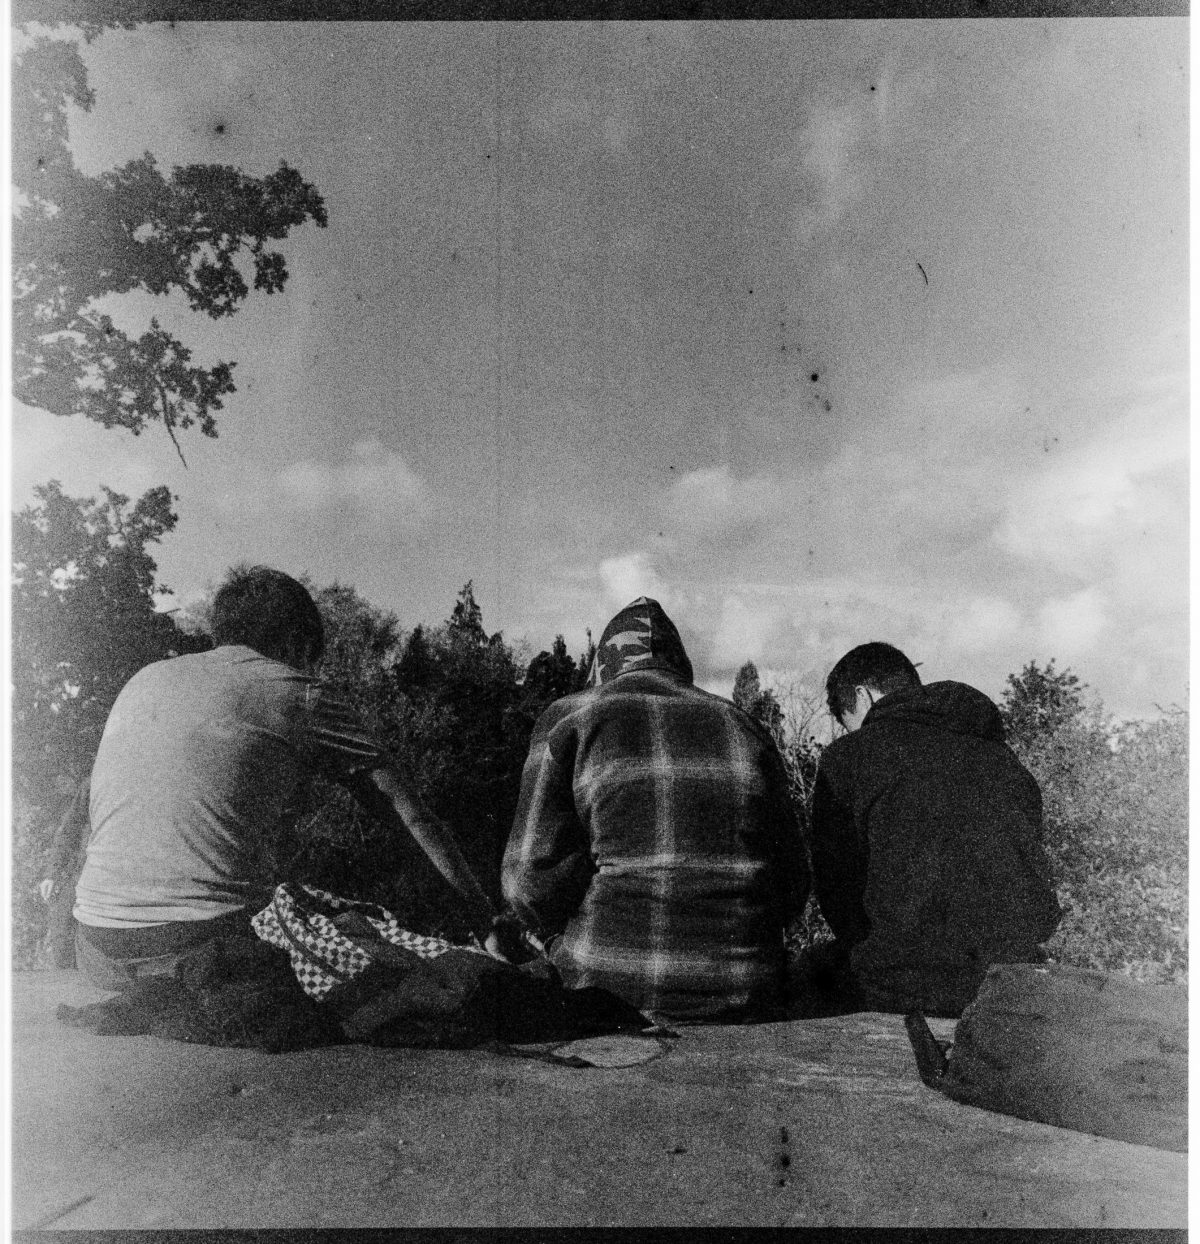 Three young men sit on a concrete platform, their backs to the camera.